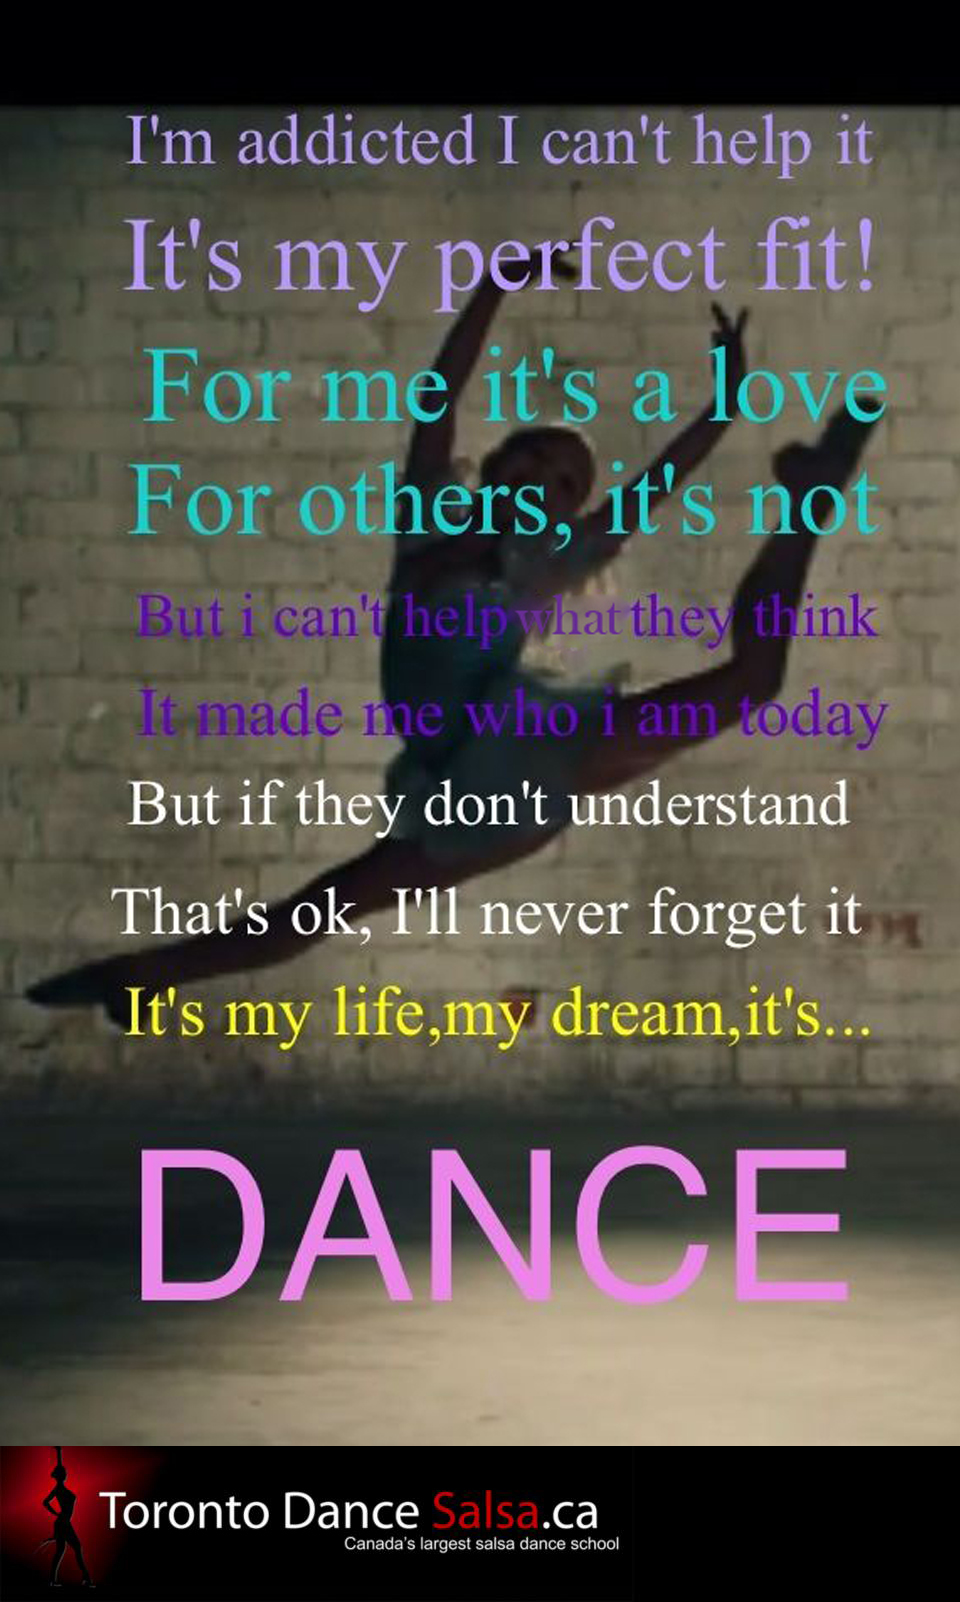 It's my life, my dream, it's… DANCE